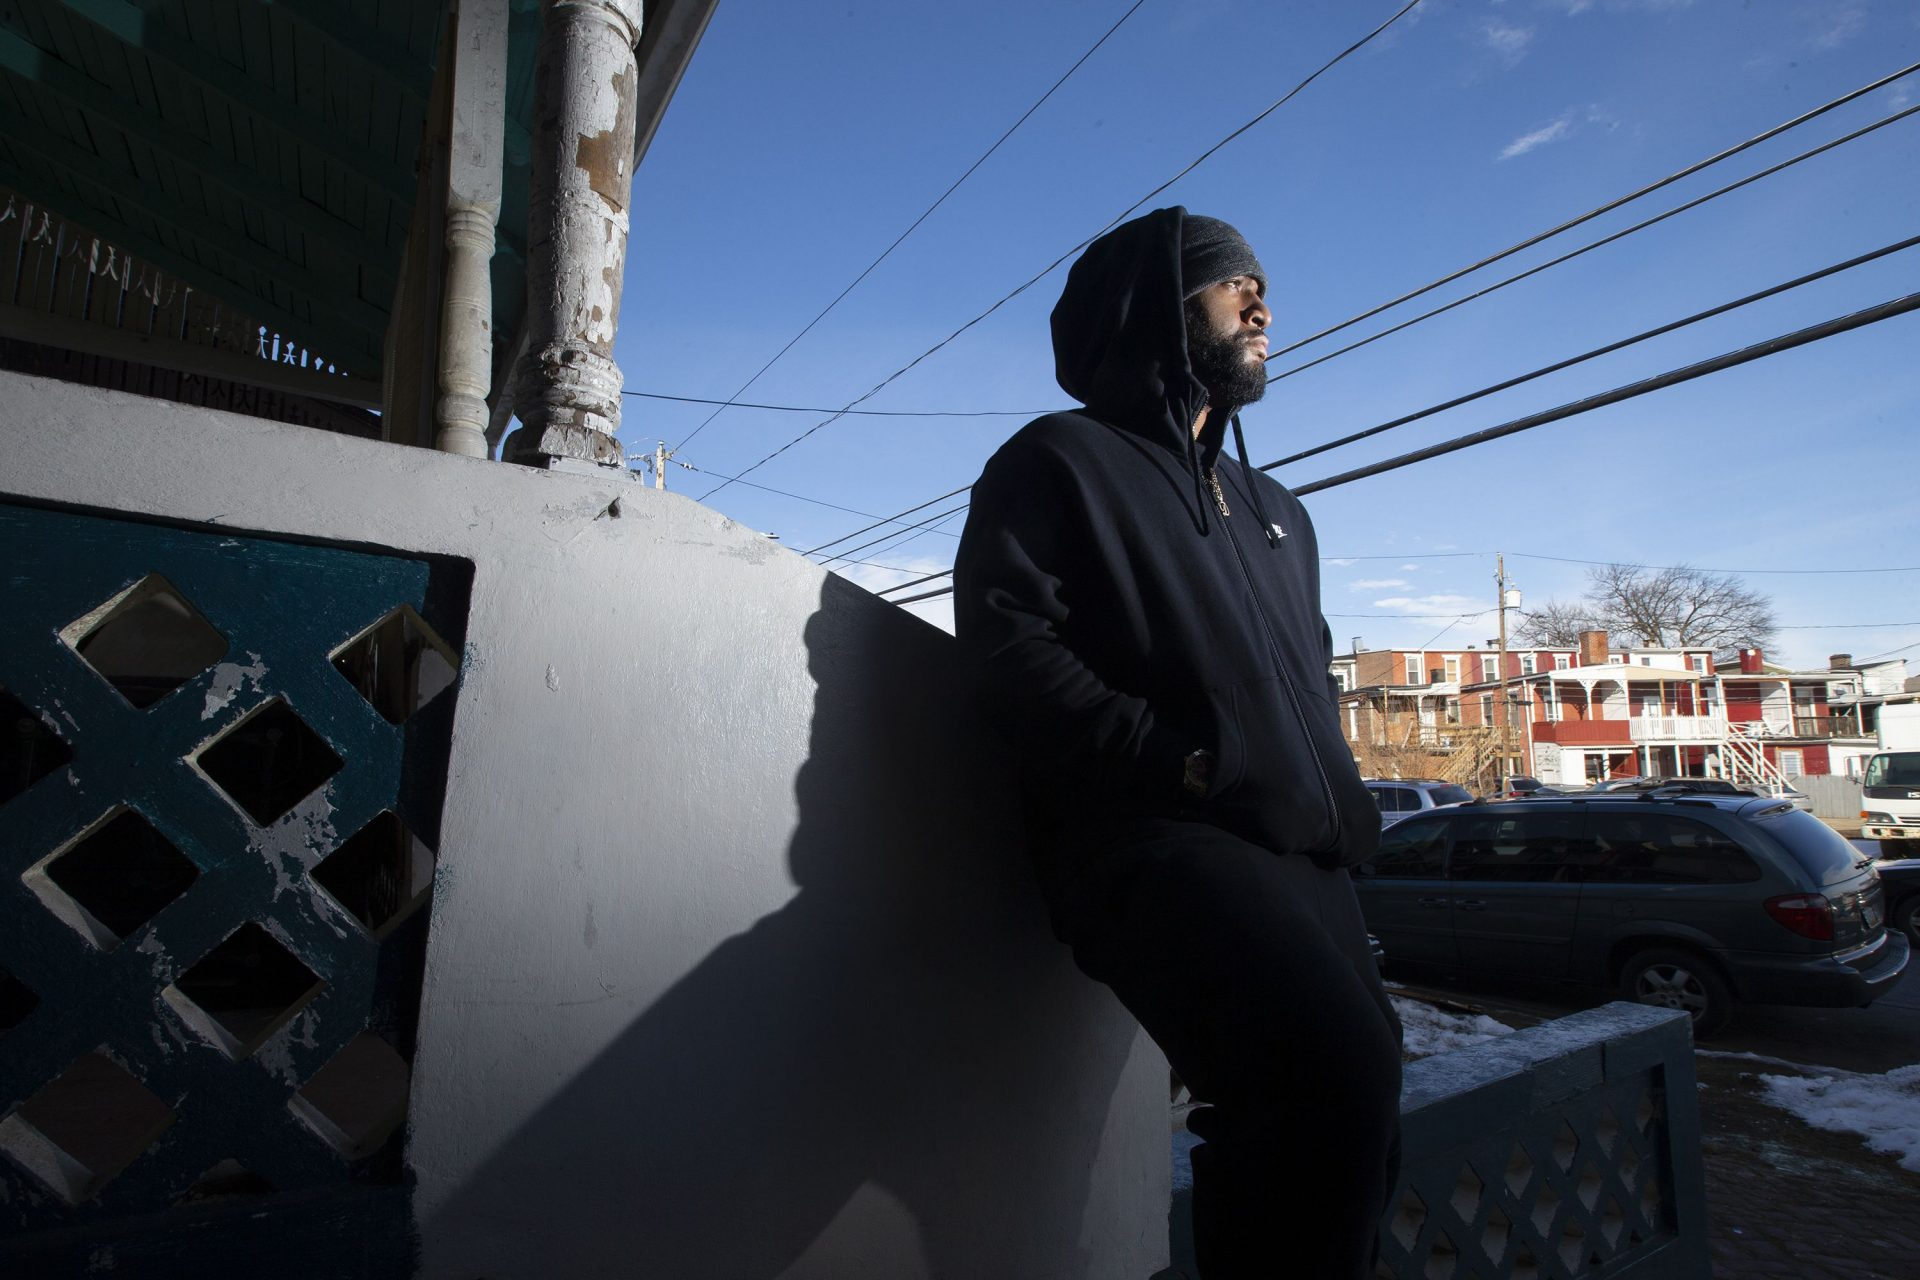 Dayshawn Carroll, 10 years after graduation, is working at McDonald's and still owes more than $950 in student debt he took on as a condition of his Milton Hershey School scholarship.